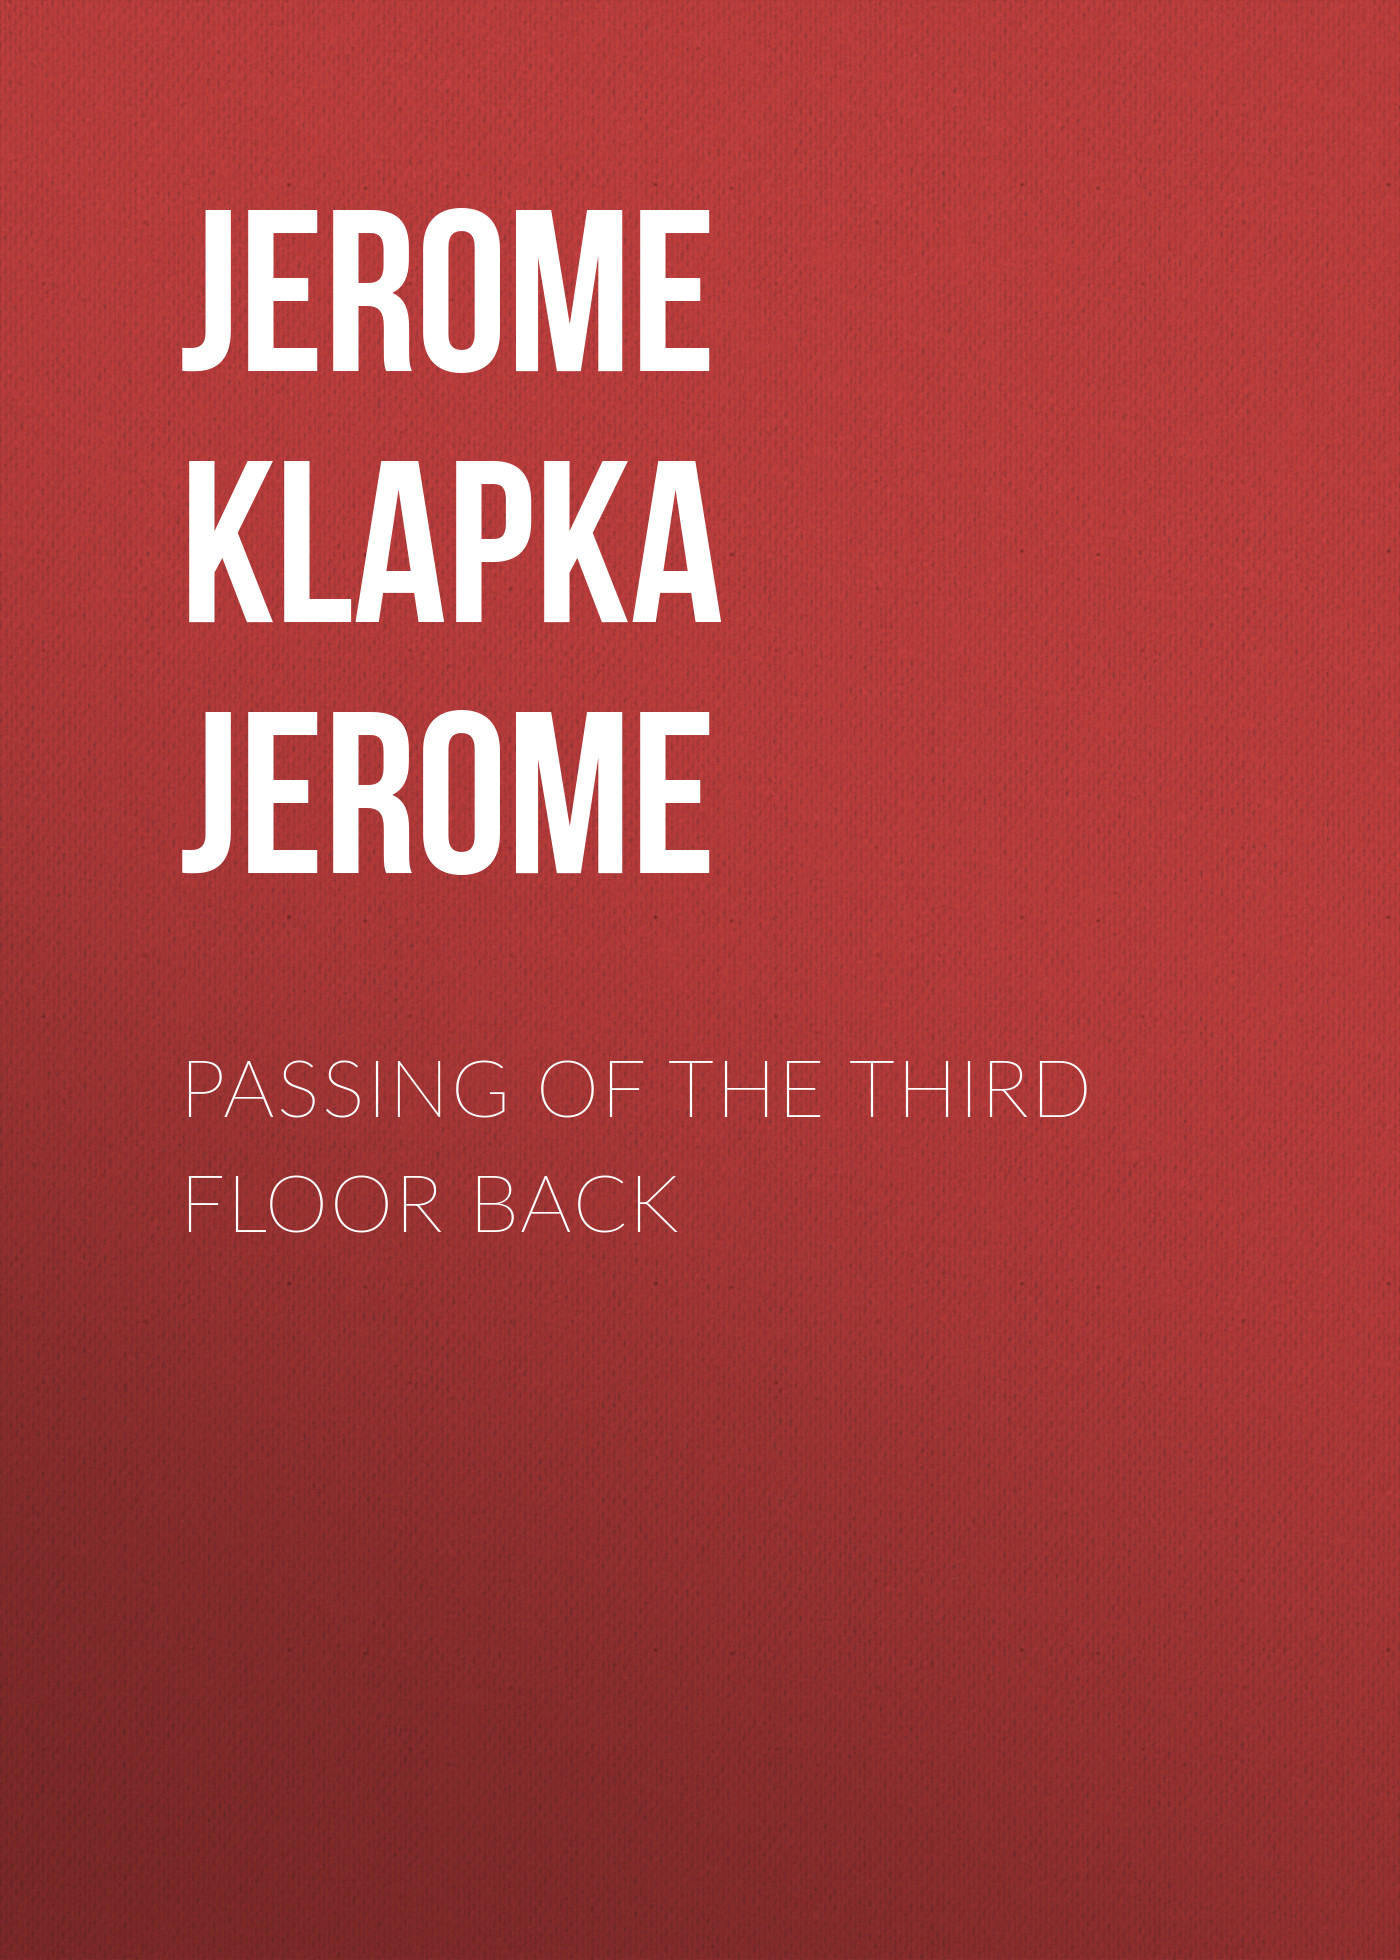 Джером Клапка Джером Passing of the Third Floor Back джером клапка джером diary of a pilgrimage